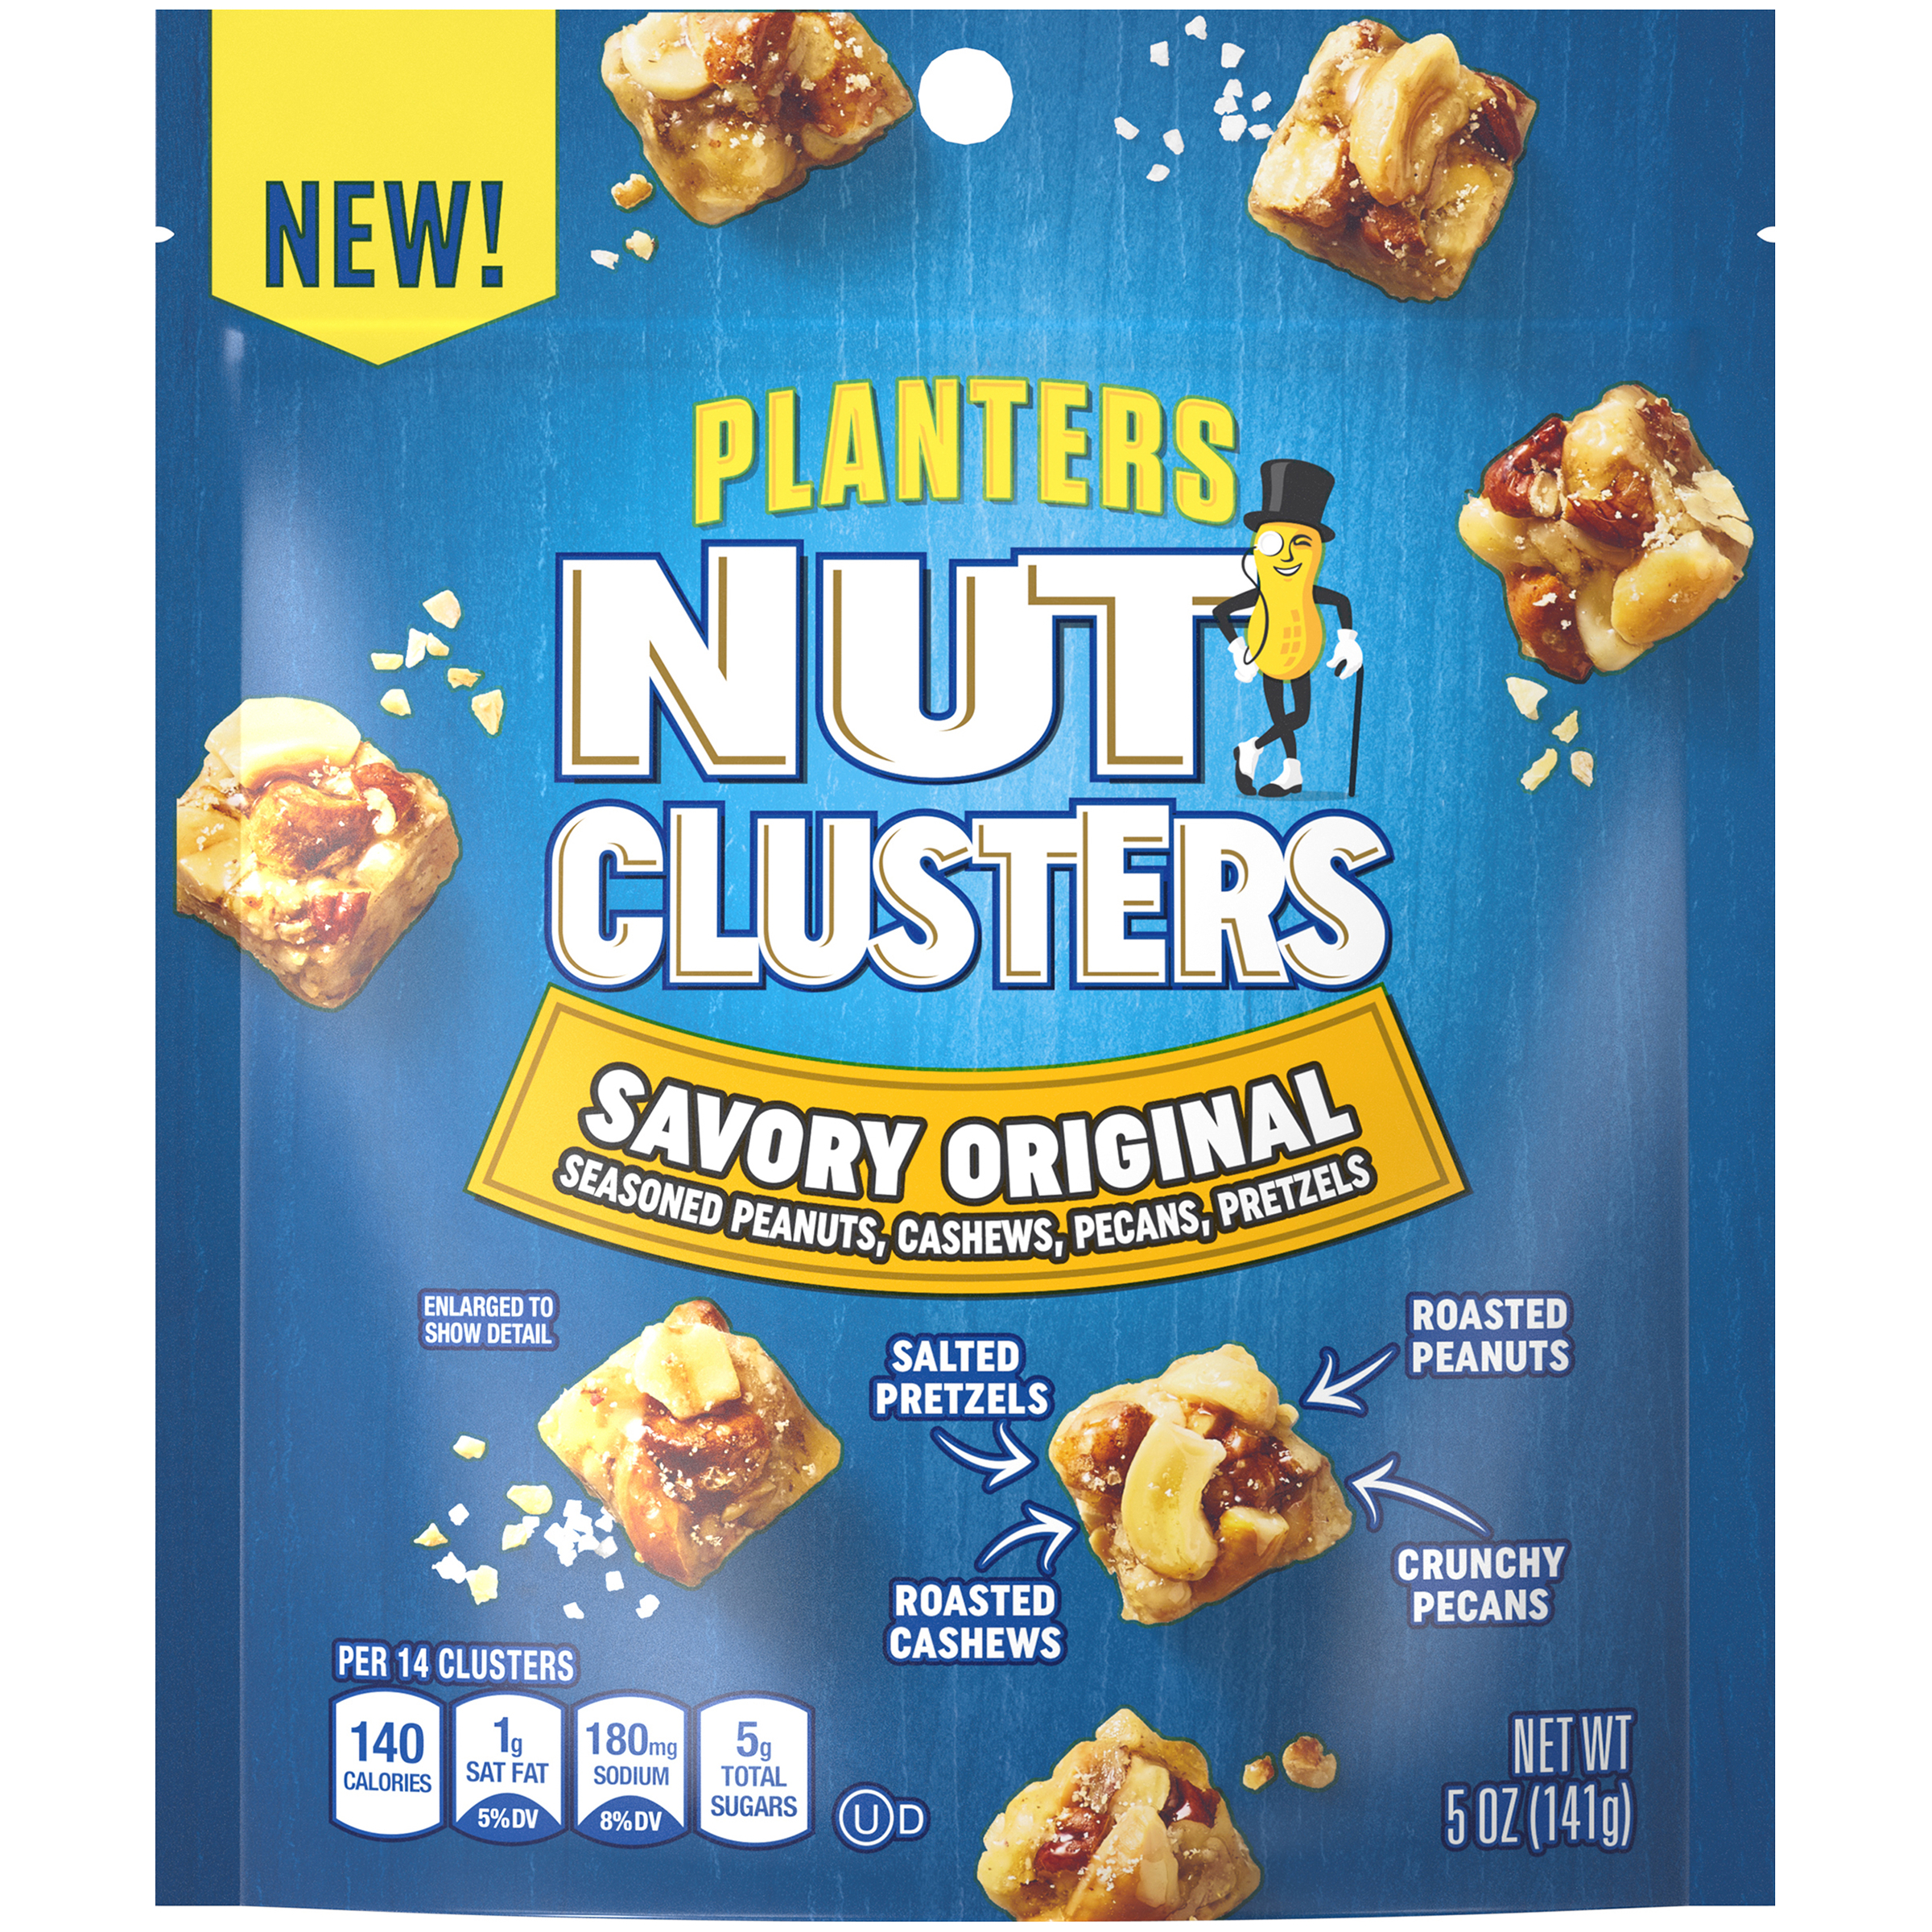 Planters Original Salted Nut Clusters with Cashews Peanuts Pecans & Salted Pretzels, 5 oz Bag image